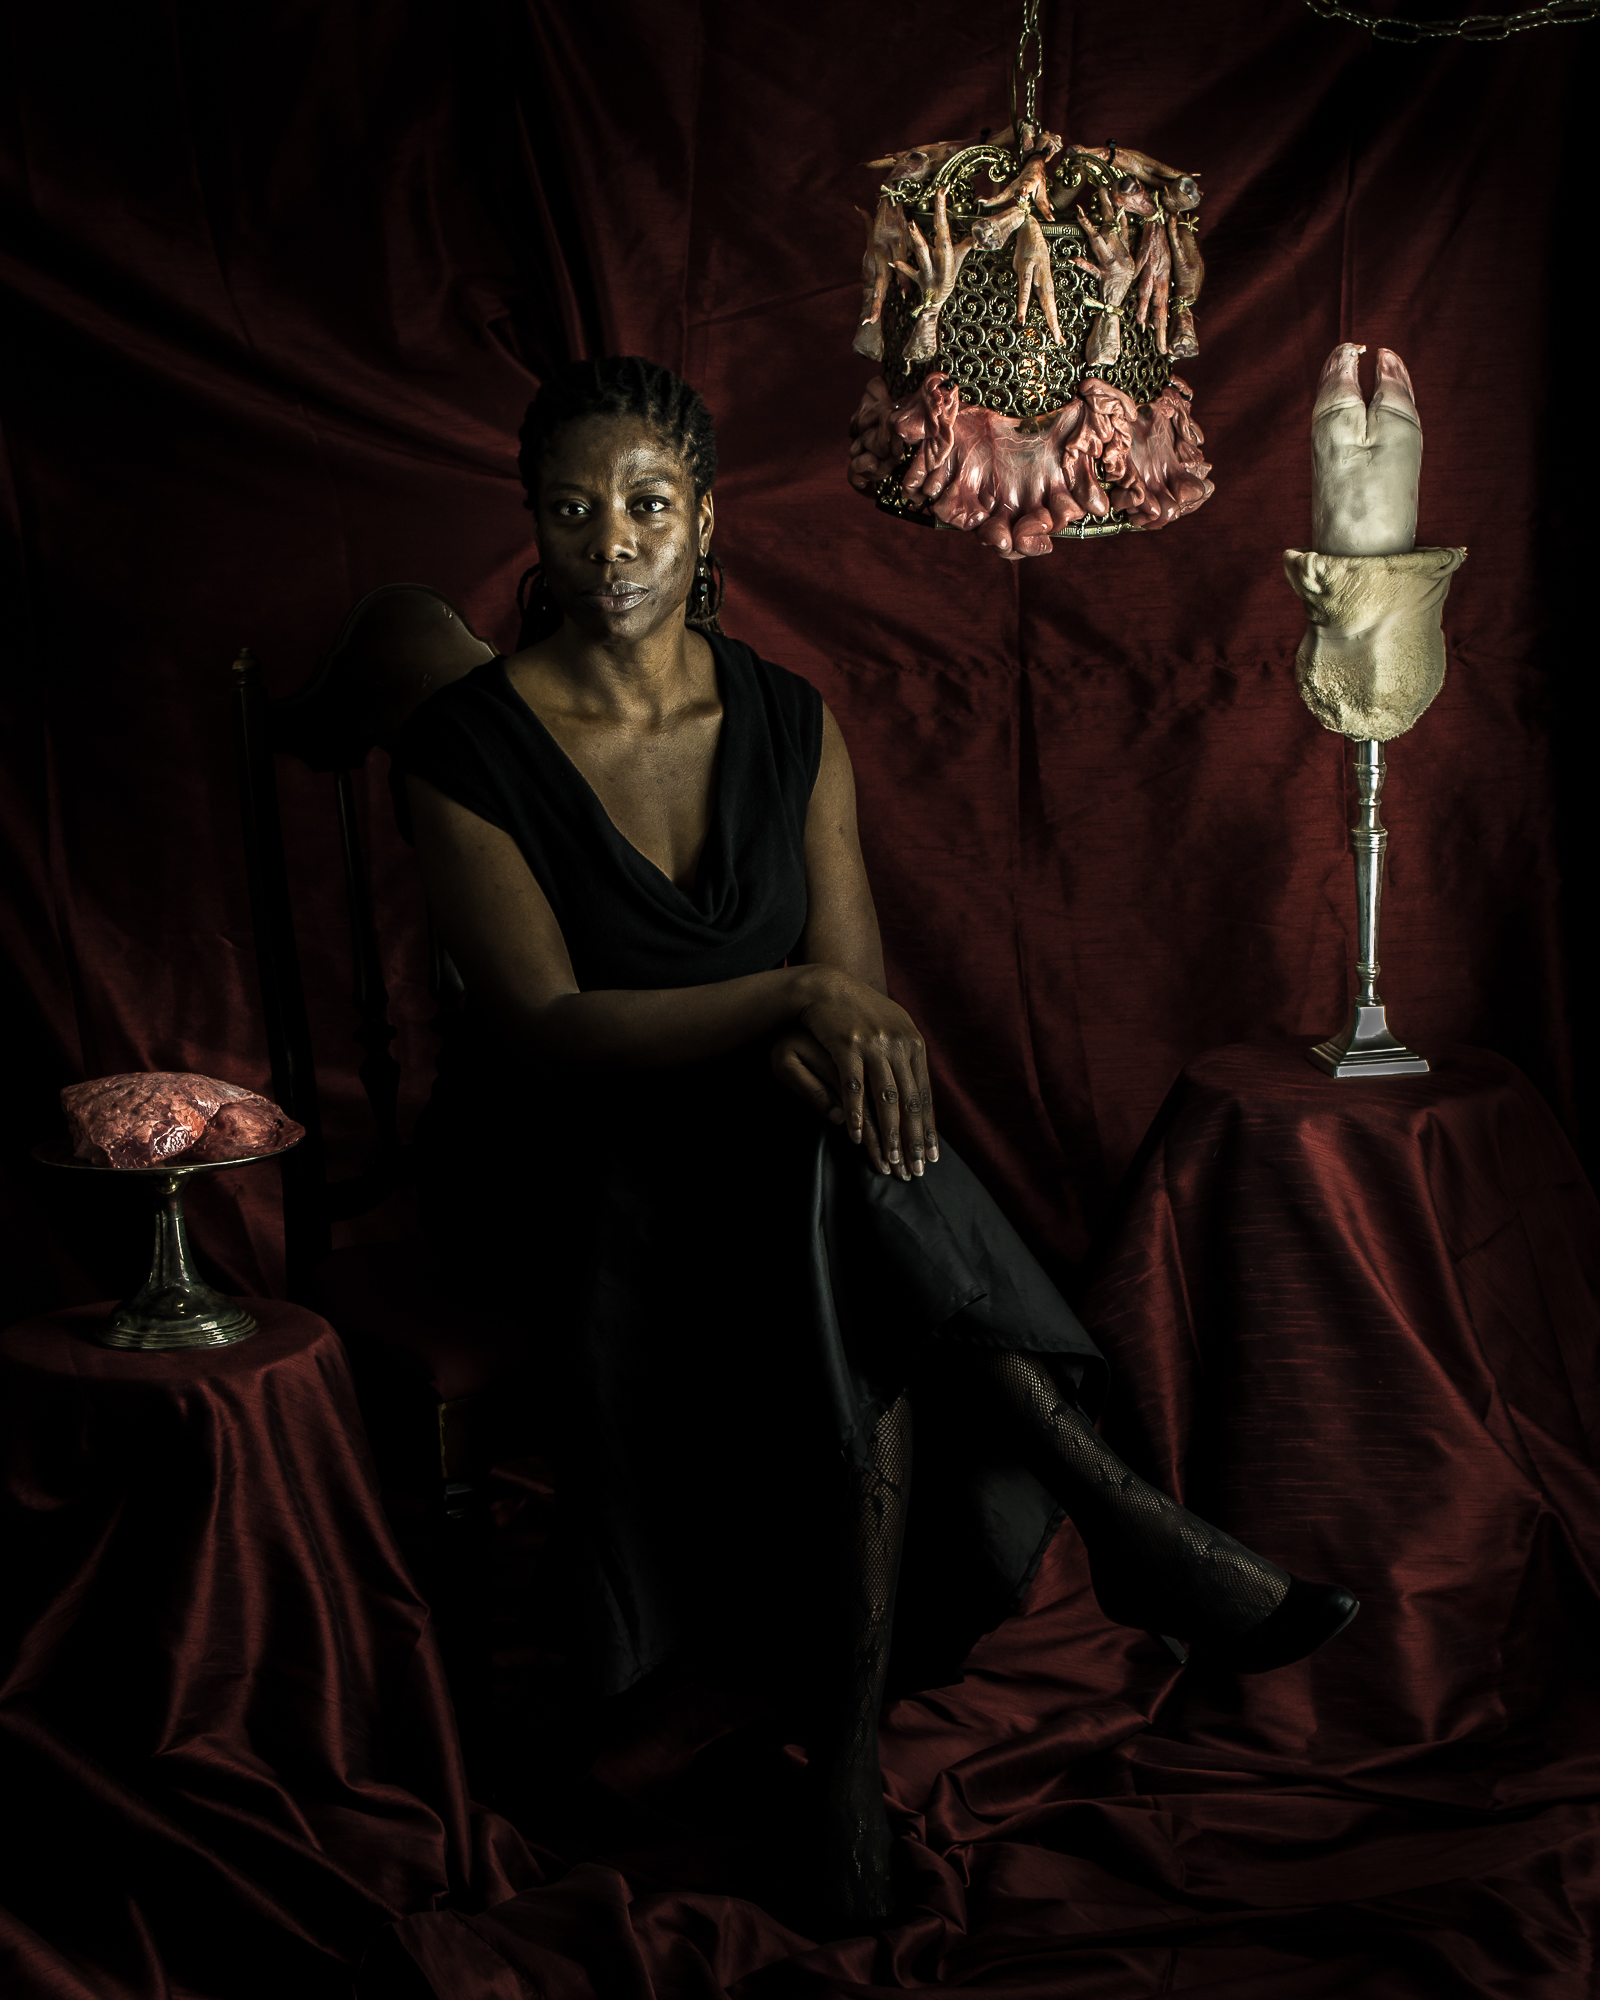 Another shot from our shoot. Me posing with cow lung, meat chandelier, and cow-foot candelabra bound in goat stomach.